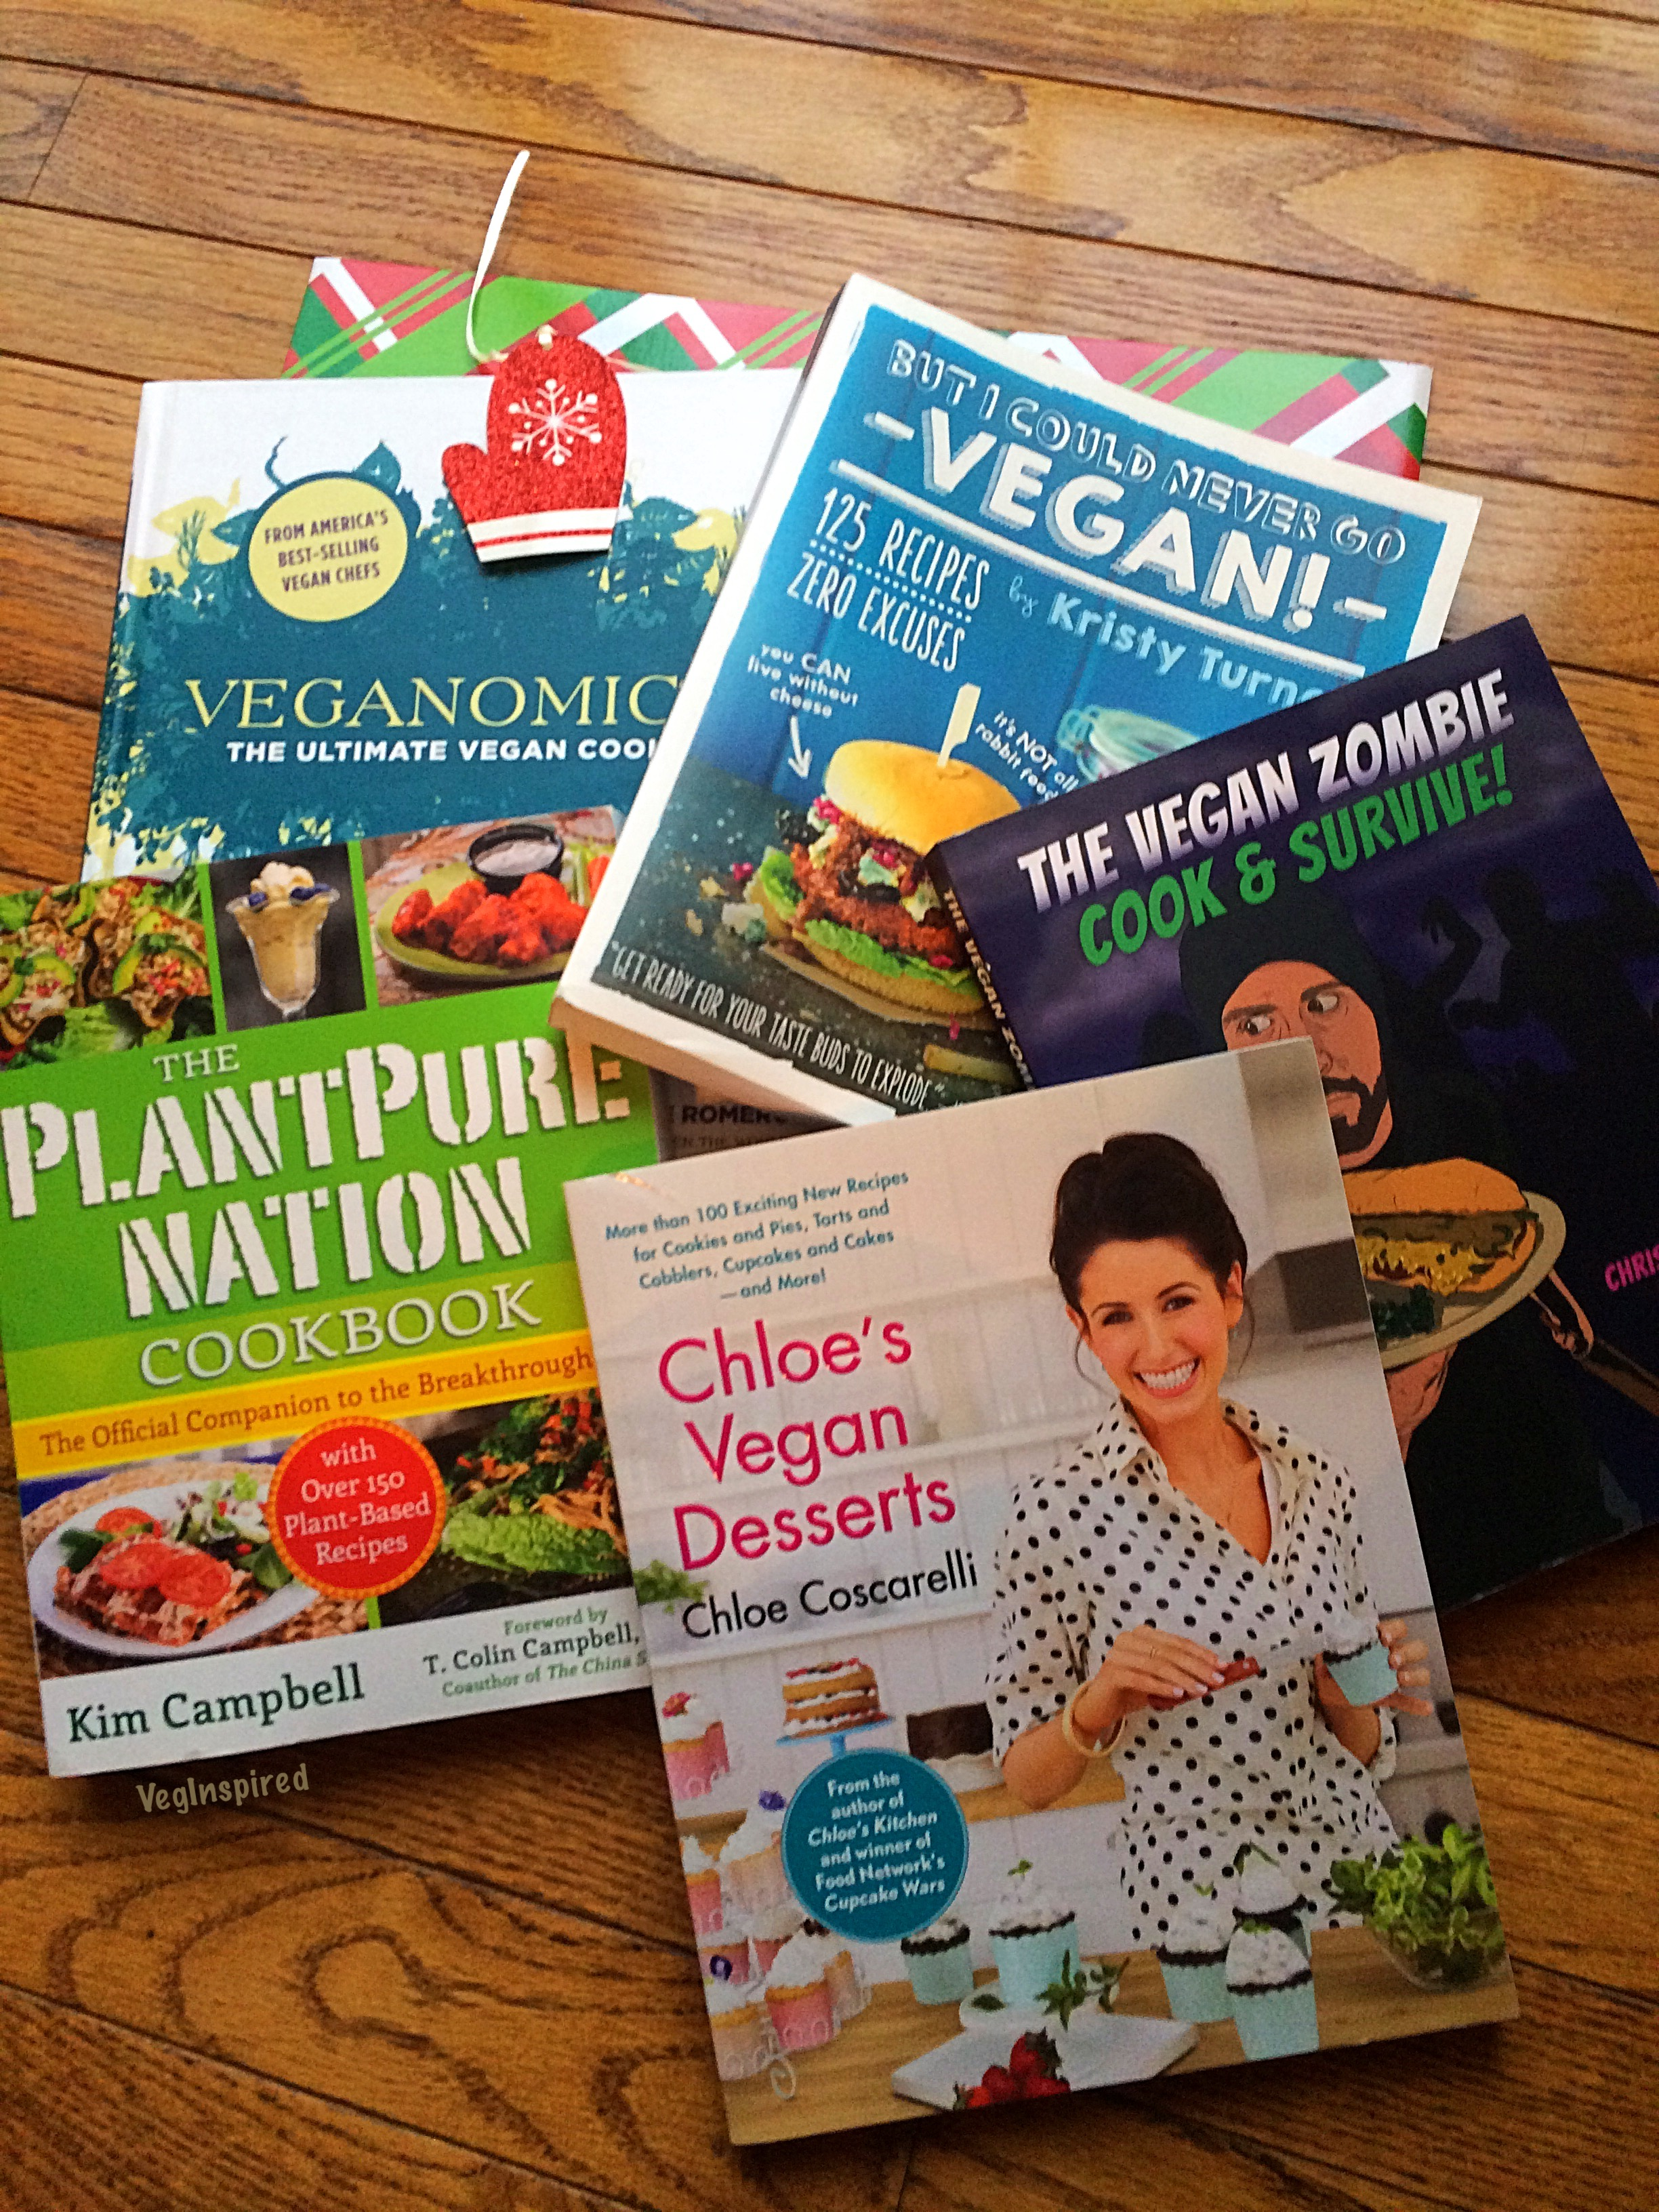 Vegan Cookbooks 11.23.16